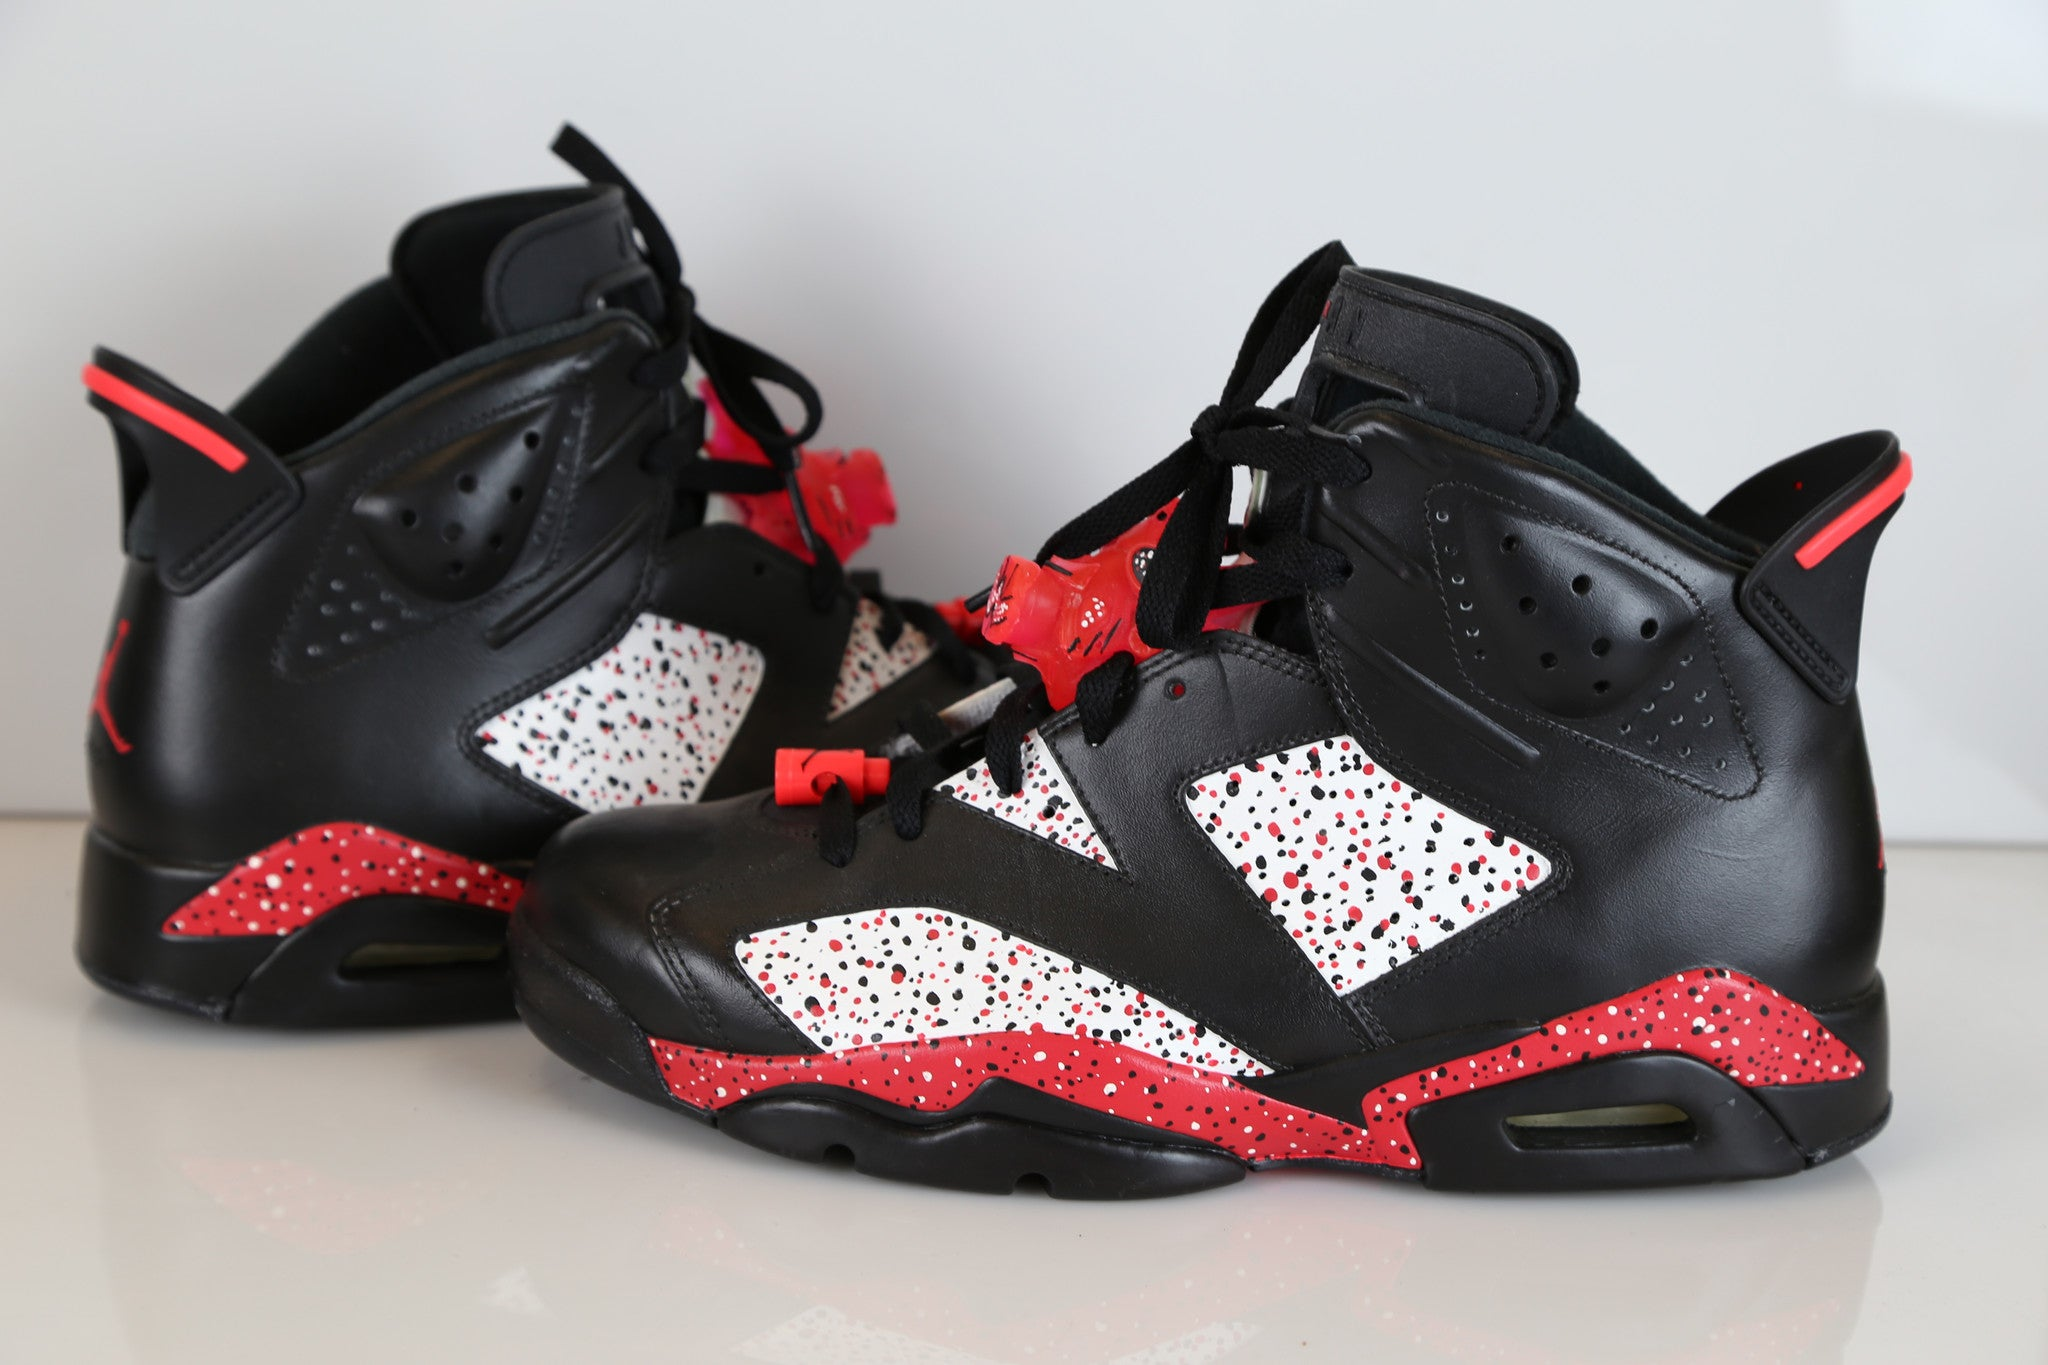 new product 16c86 f3ed6 Custom Nike Air Jordan Retro 6 Black Infra Pink 10 | Zadehkicks